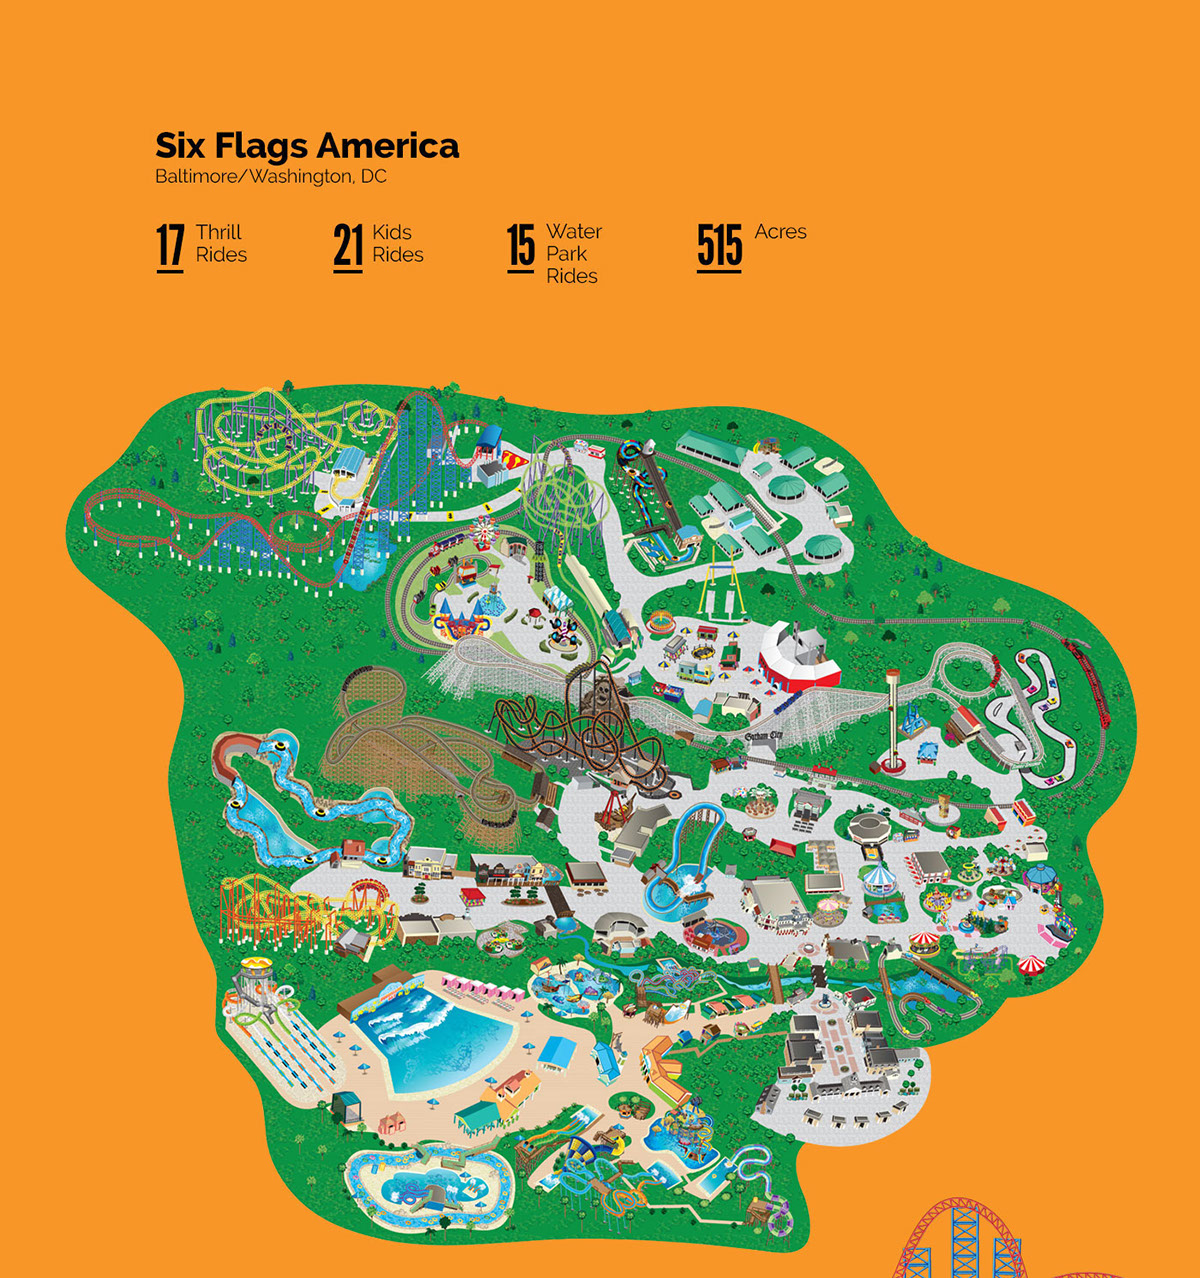 Six flags park maps illustration on pantone canvas gallery six flags park maps working within the art directors illustration style i was responsible for recreating buildings landscaping kids rides gumiabroncs Images